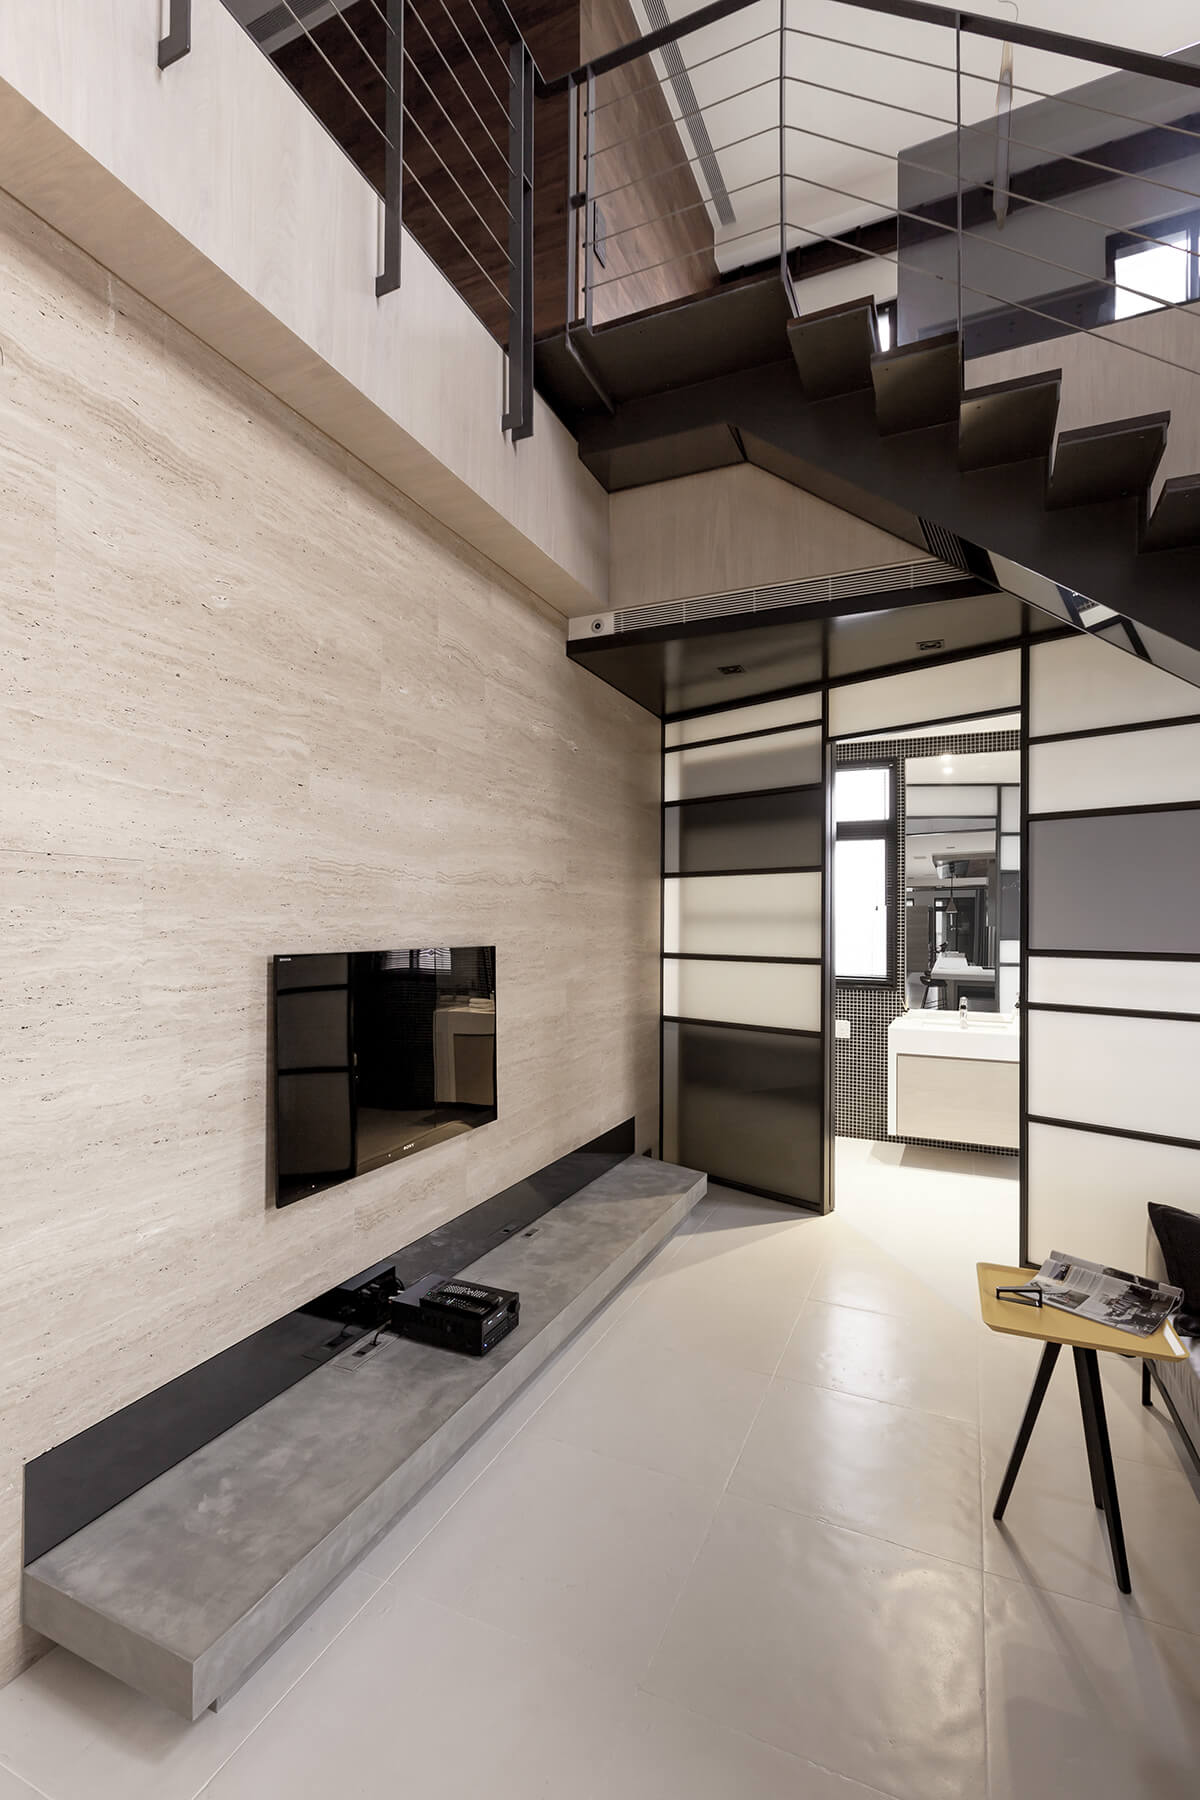 The black and white patterned wall in the living room slides open to reveal a bathroom, tucked beneath the staircase.